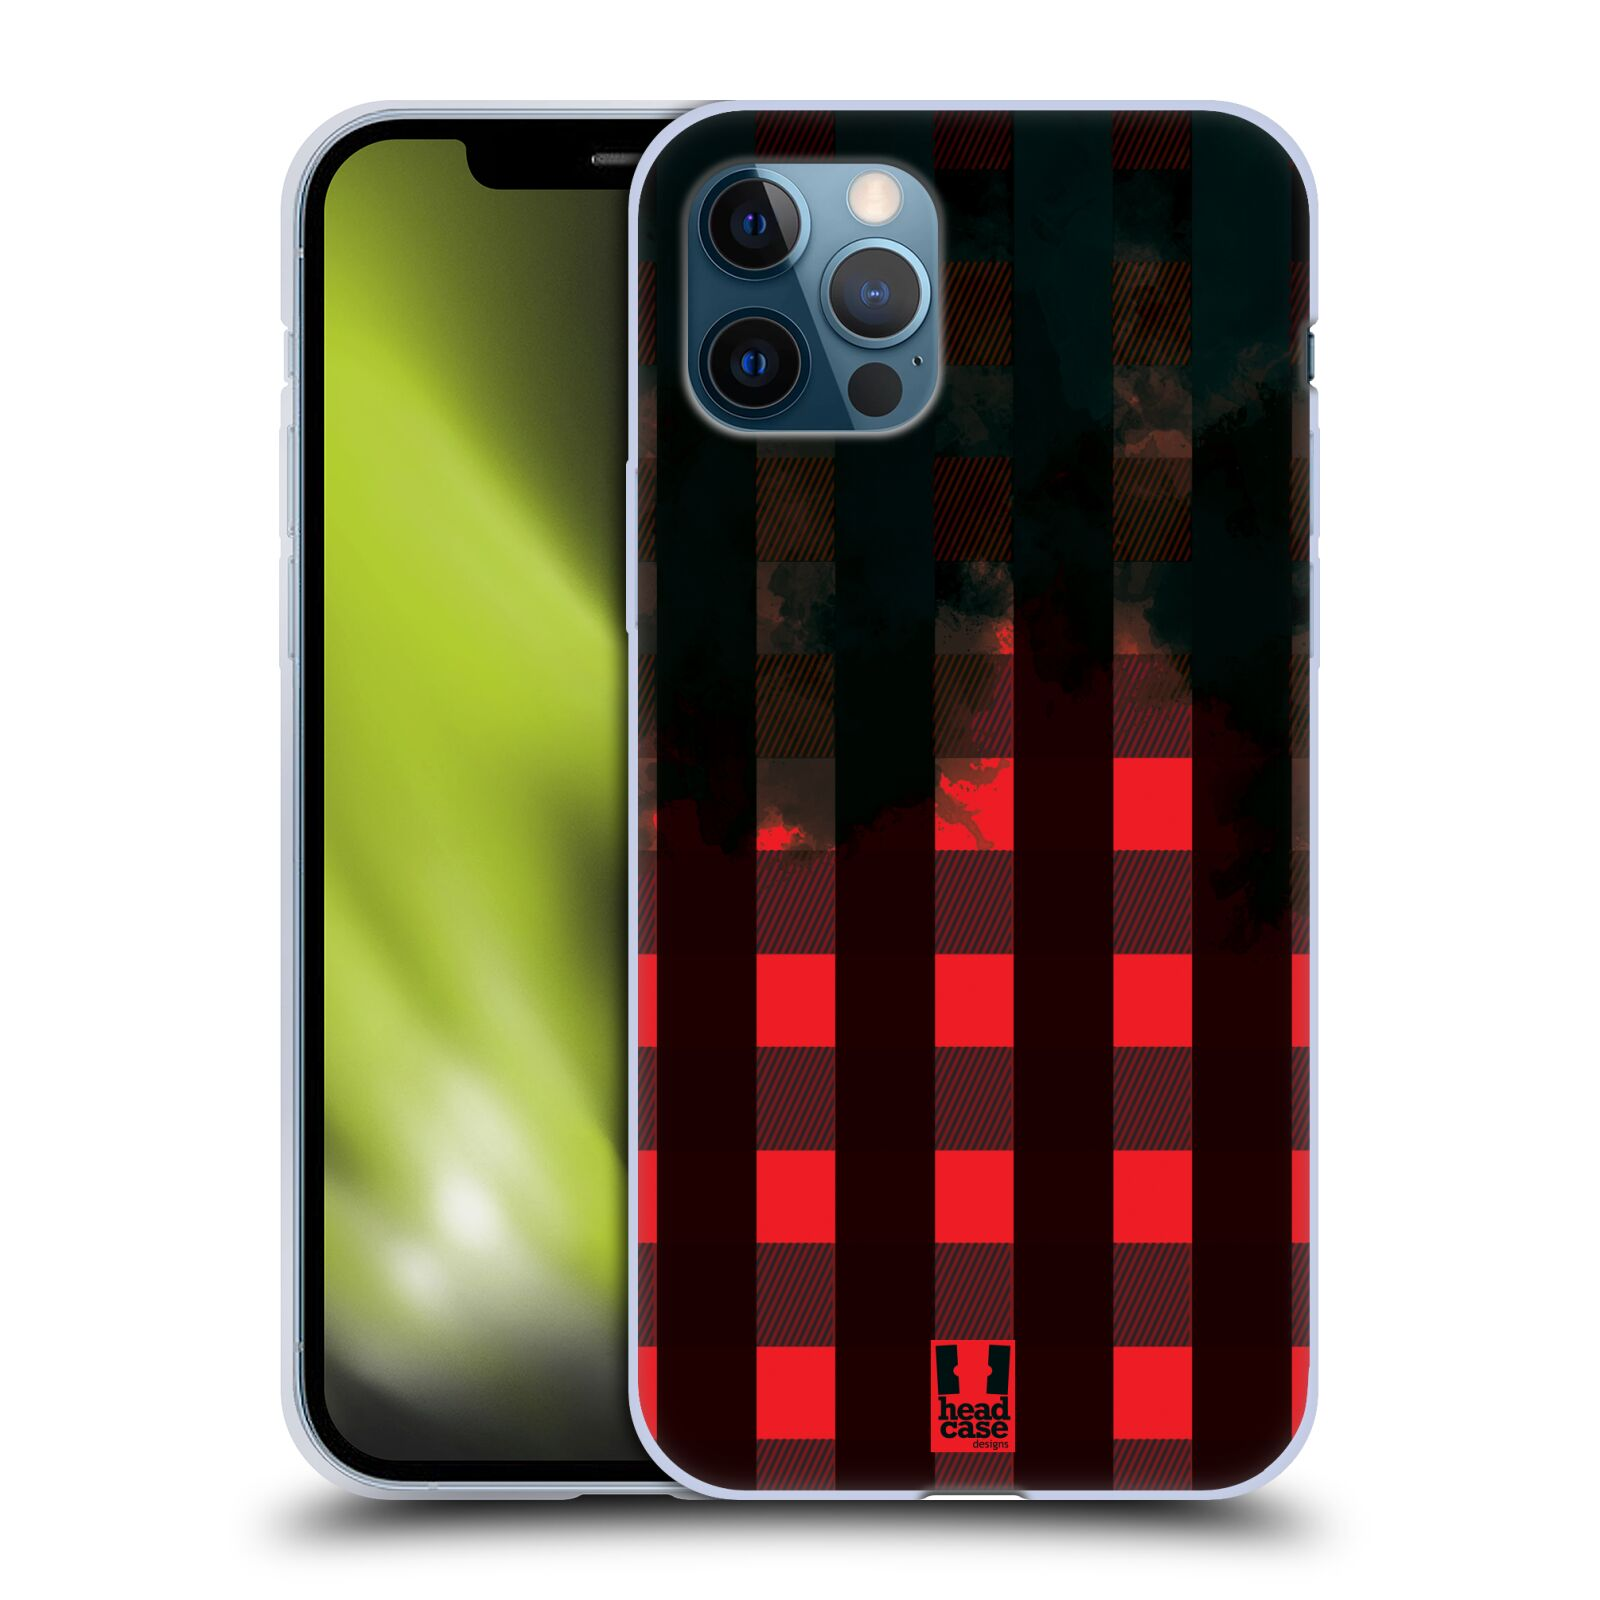 Silikonové pouzdro na mobil Apple iPhone 12 / 12 Pro - Head Case - FLANEL RED BLACK